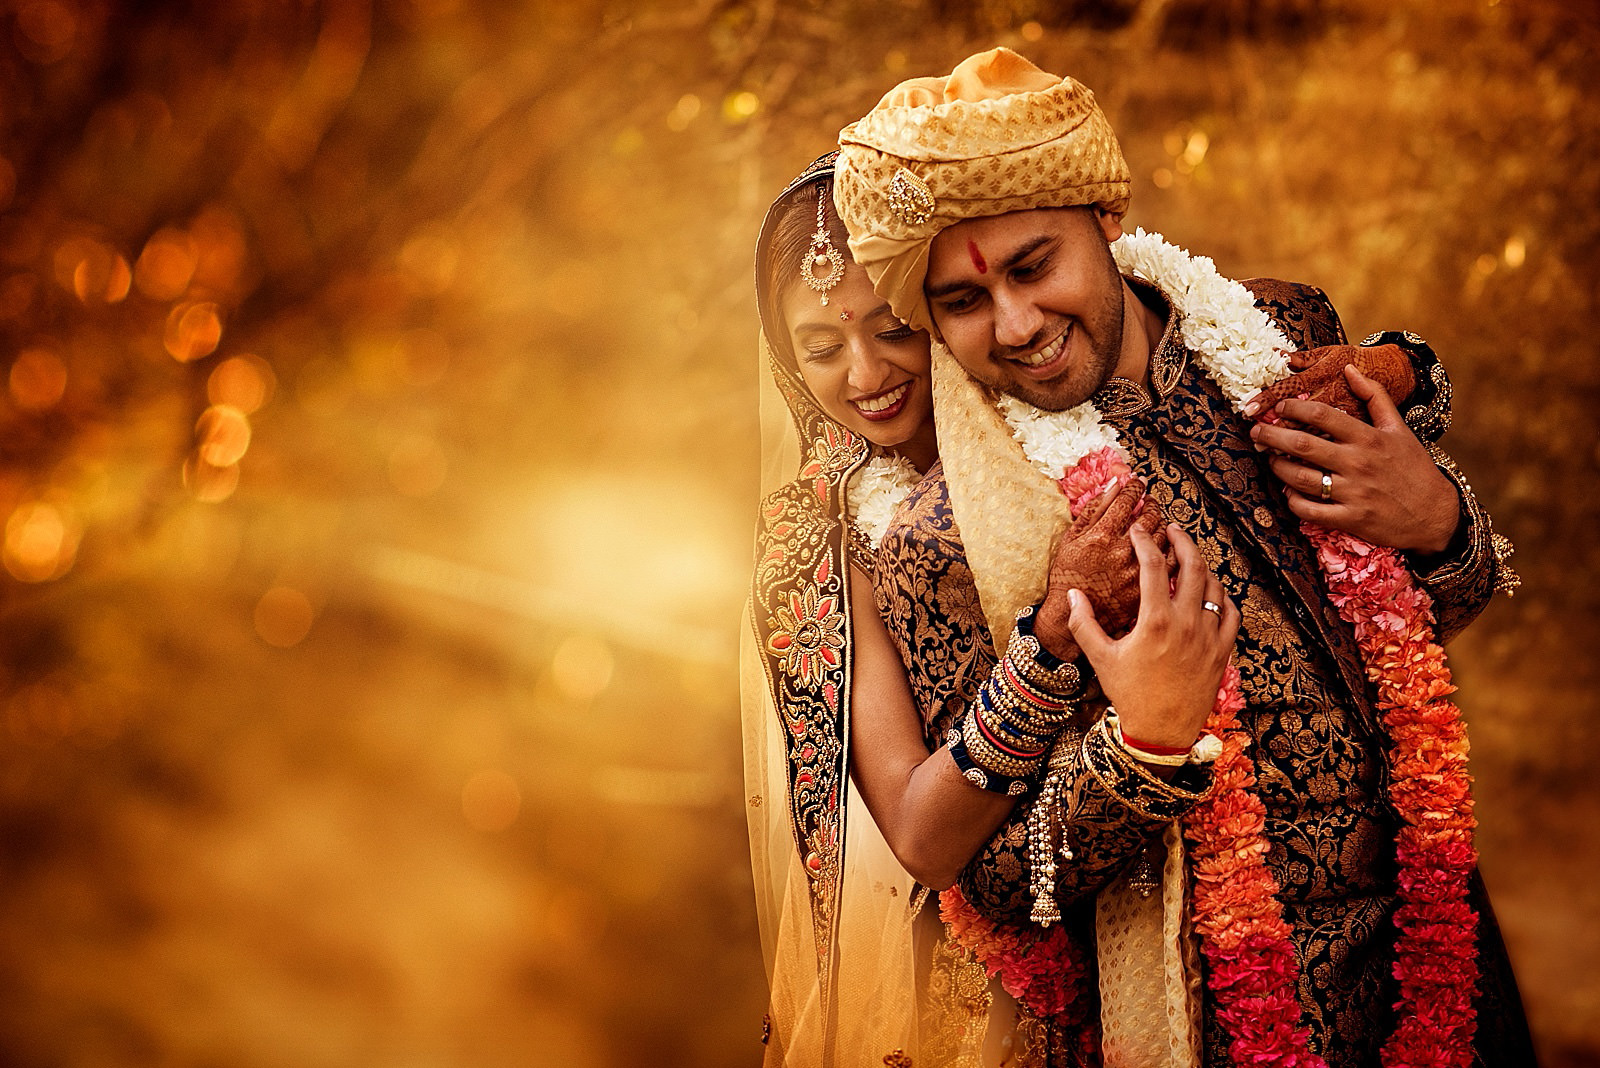 Jex-Estate-Hindu-Wedding-top-South-African-Wedding-Photographer-Jacki-Bruniquel-058-2057